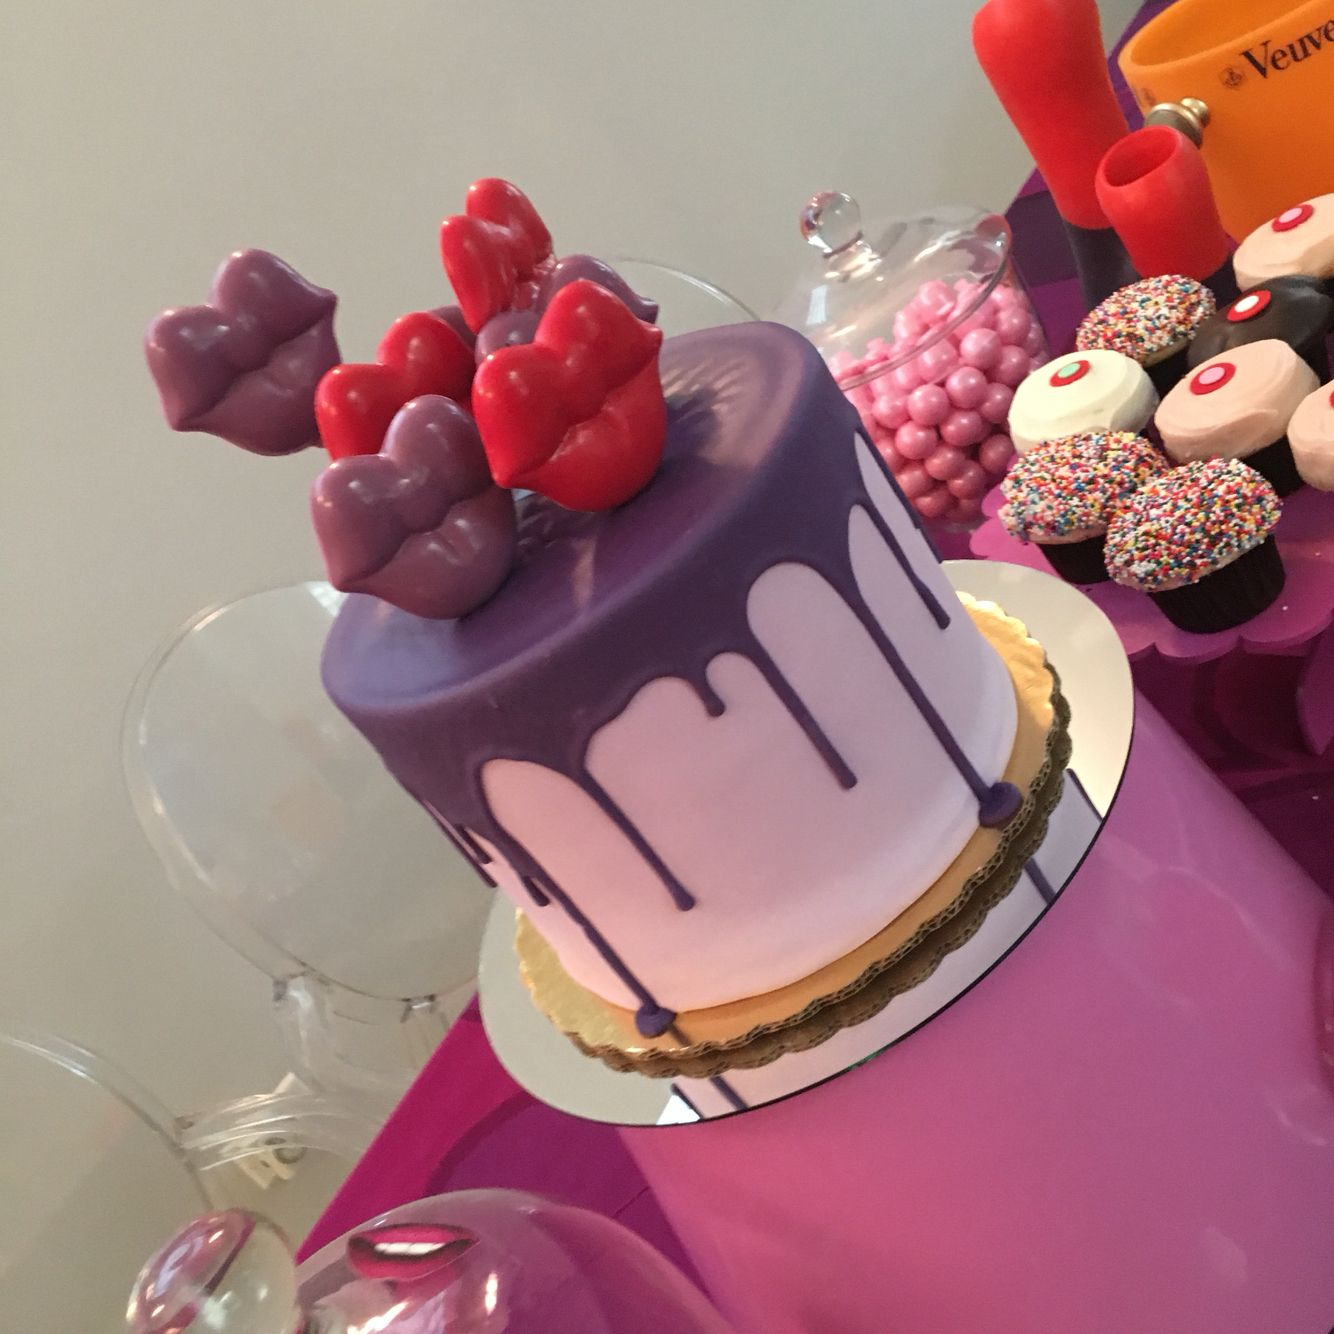 Kylie Jenner Inspired Birthday Cake On Land Of Nod Pink Metal Shade